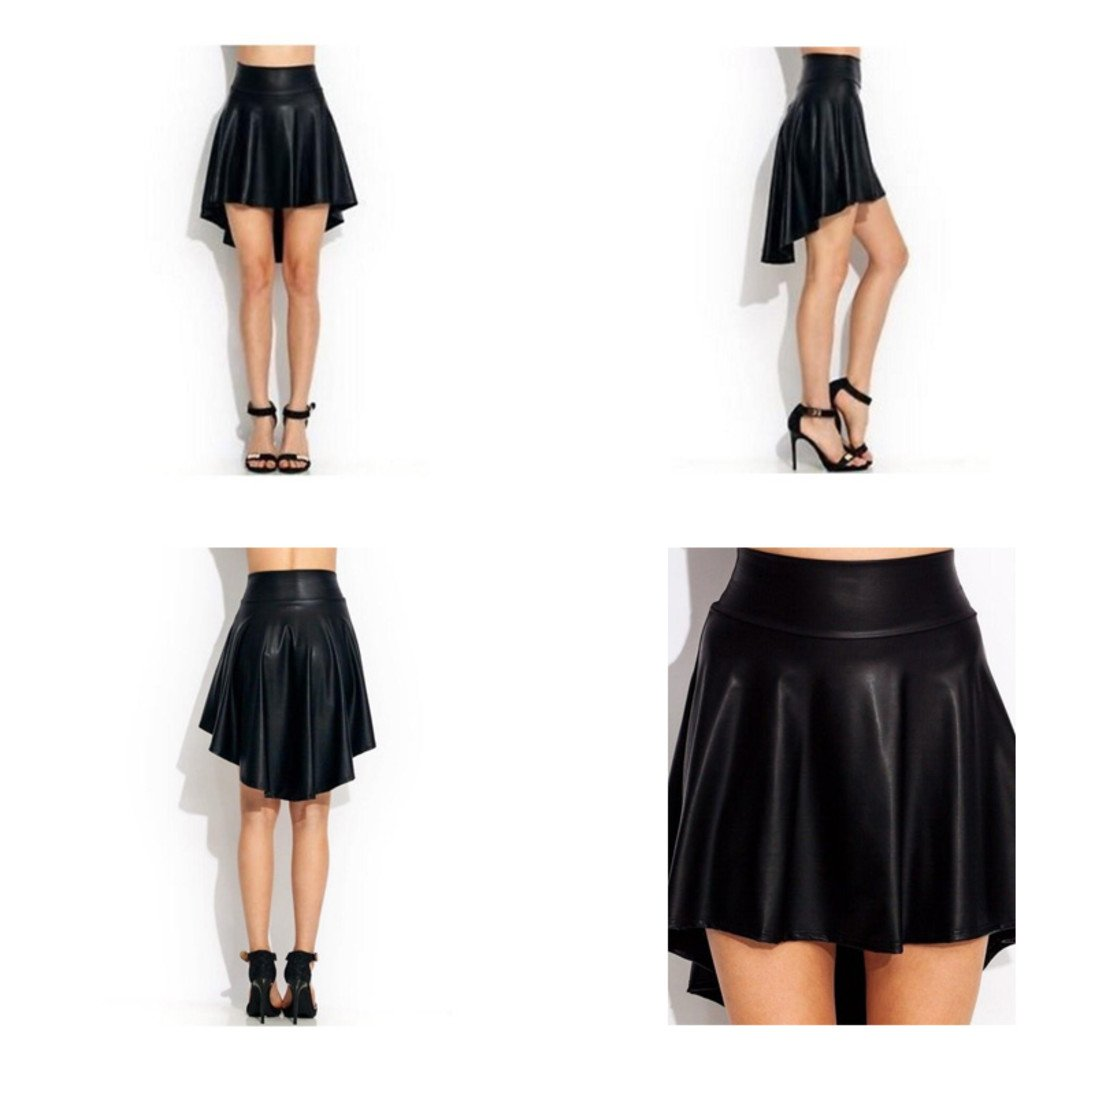 Plus Size High Waist High Low Sleek Fashion Faux Leather Skater Flared Skirt